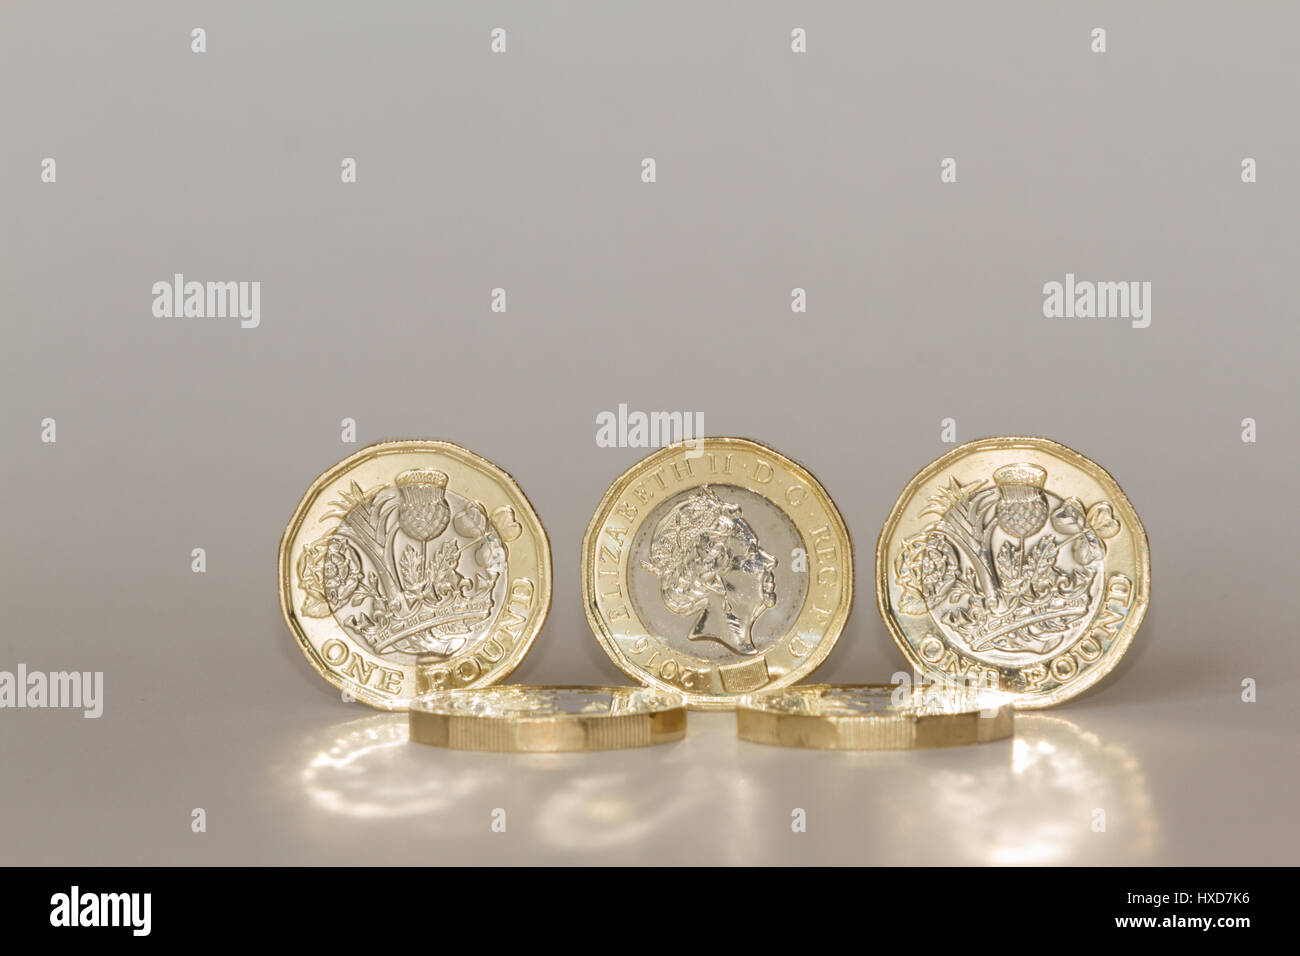 Newcastle upon Tyne, England, UK. Tuesday, 28 March, 2017. New British pound coin is issued. Credit: Andrew Nicholson/Alamy Stock Photo